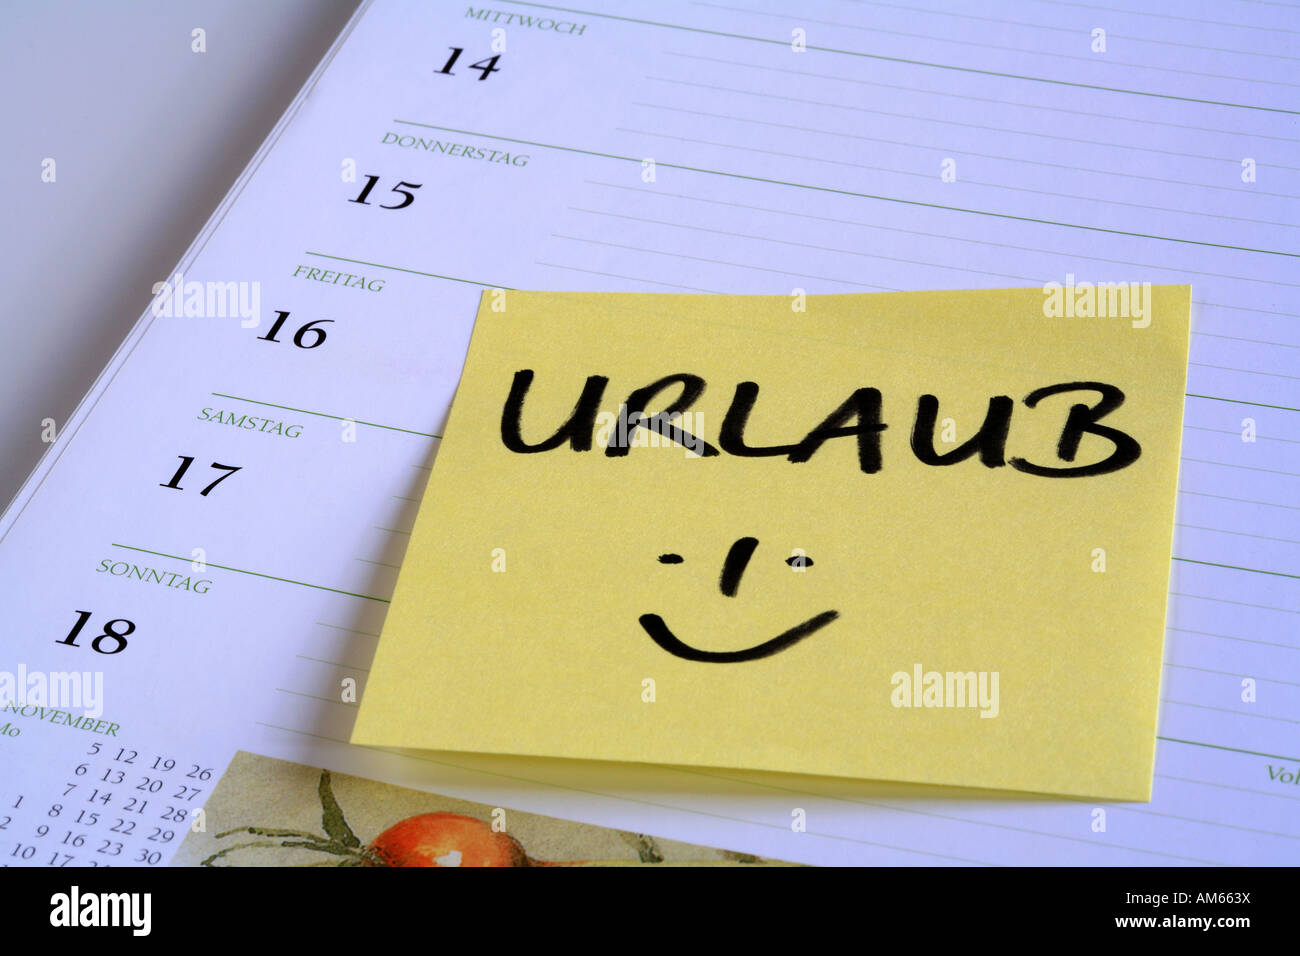 Yellow reminder note 'Urlaub' (holiday) on the page of a calendar - Stock Image